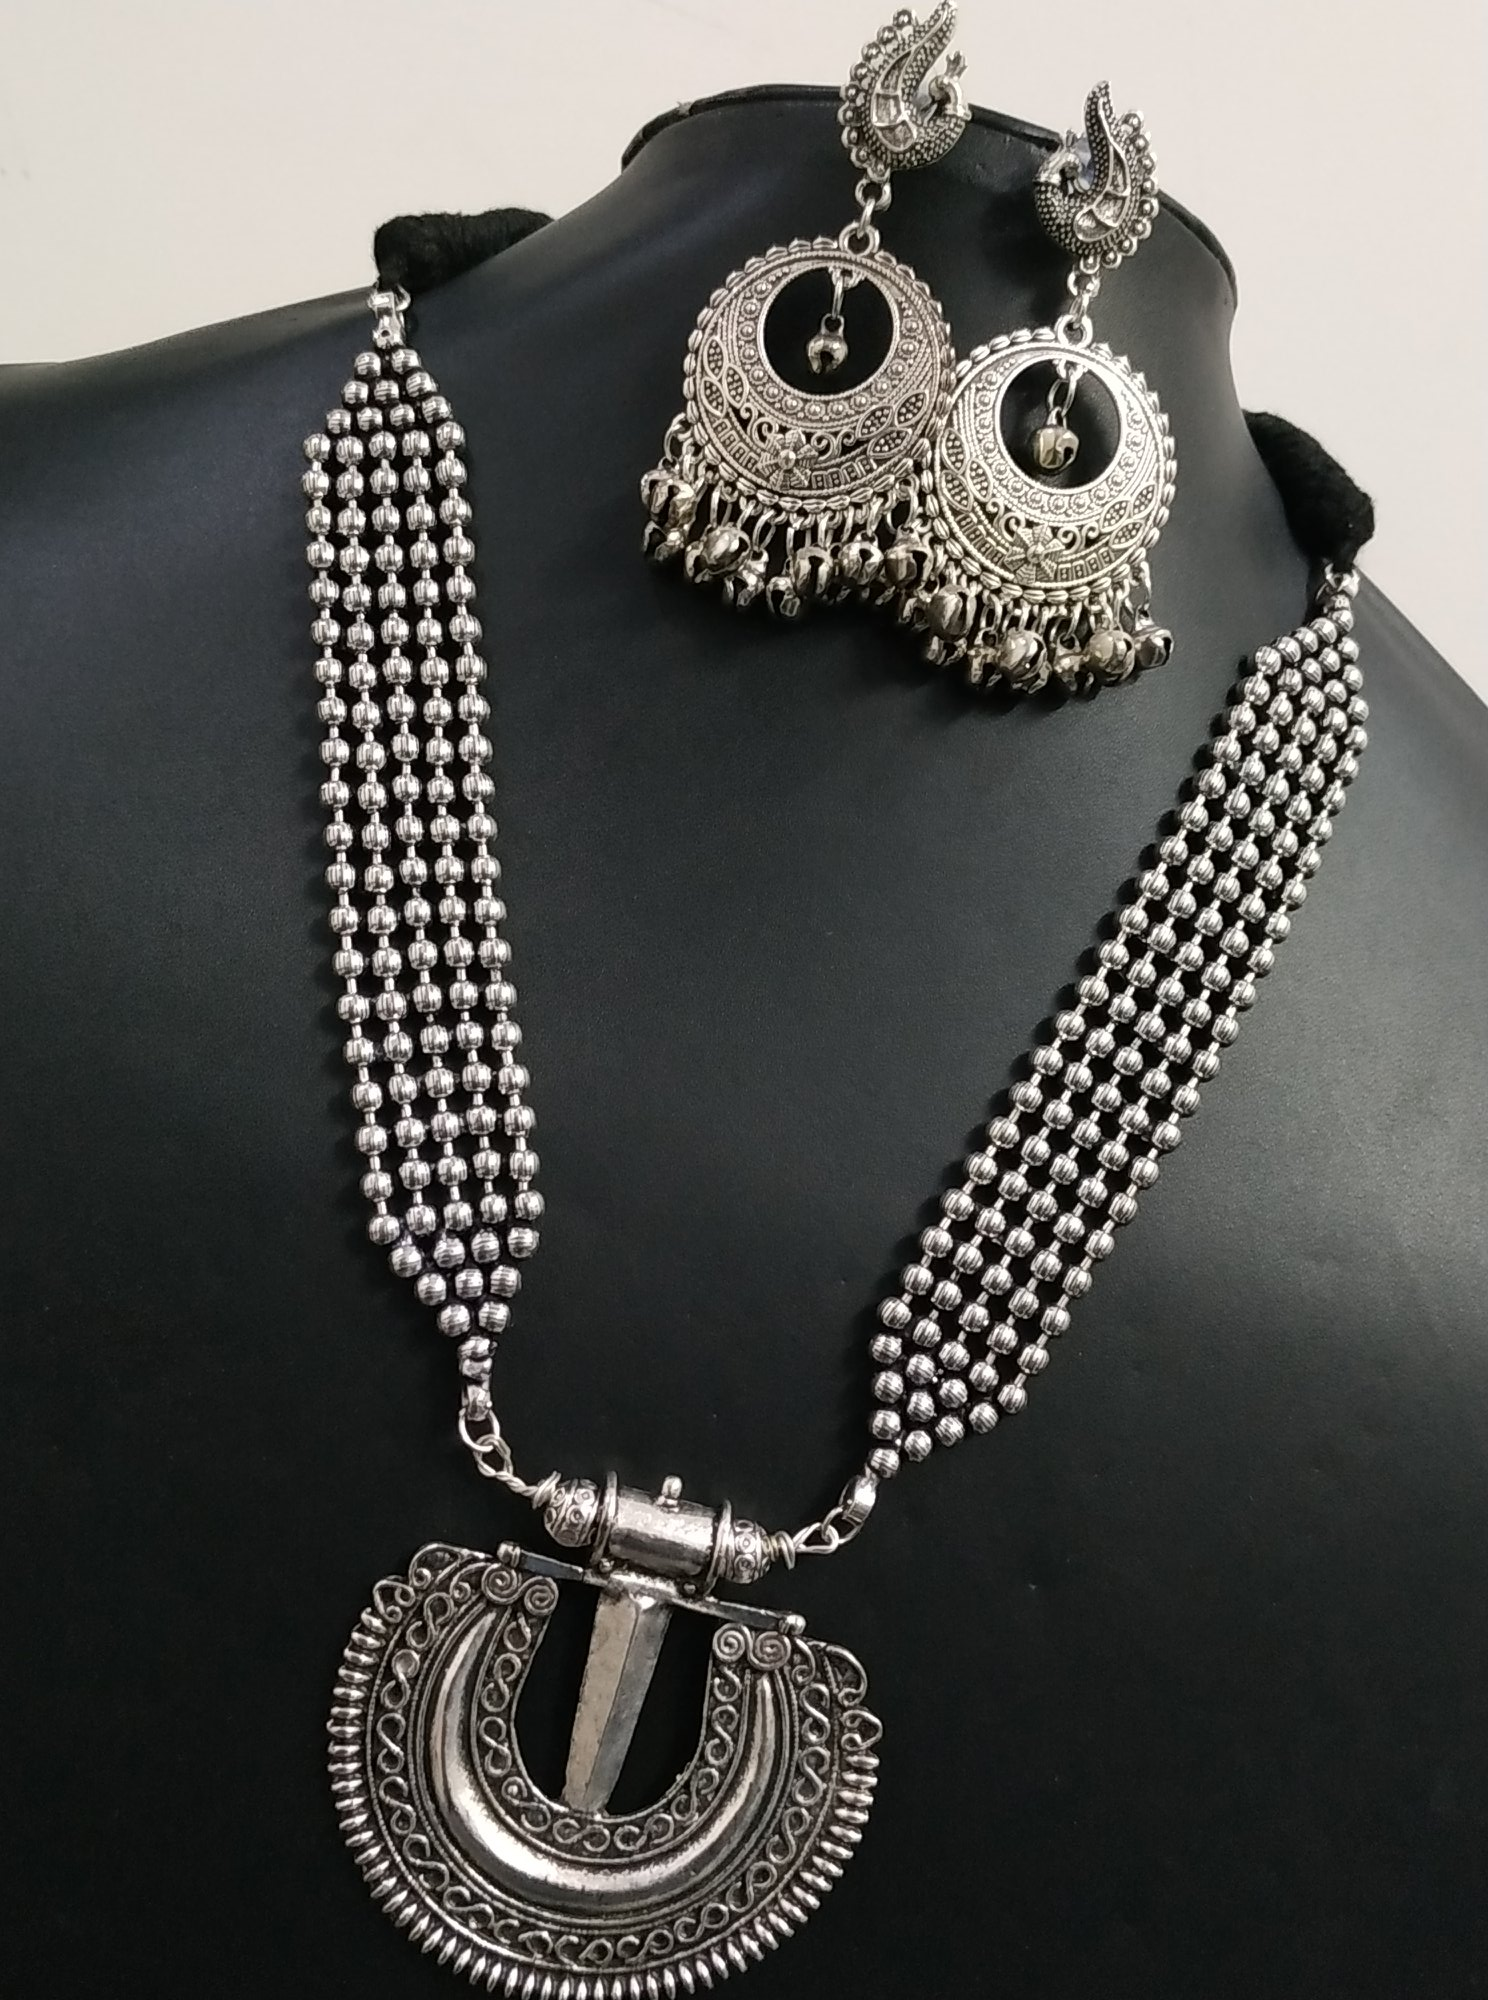 Dazzling Cocktail Heavy Ball Chain Neckalace Set